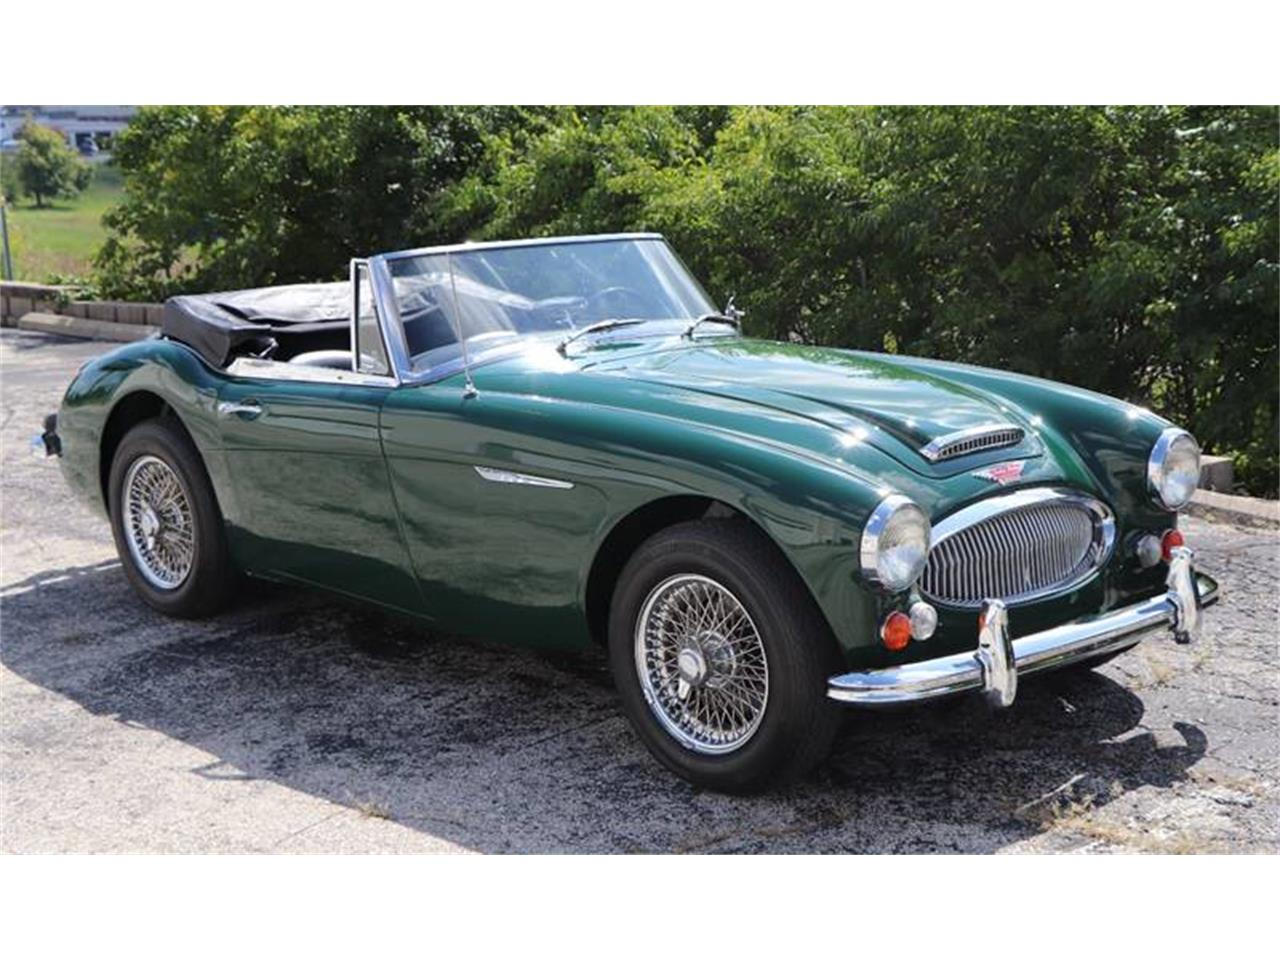 1967 Austin-Healey 3000 Mark III BJ8 for sale in St Louis, MO